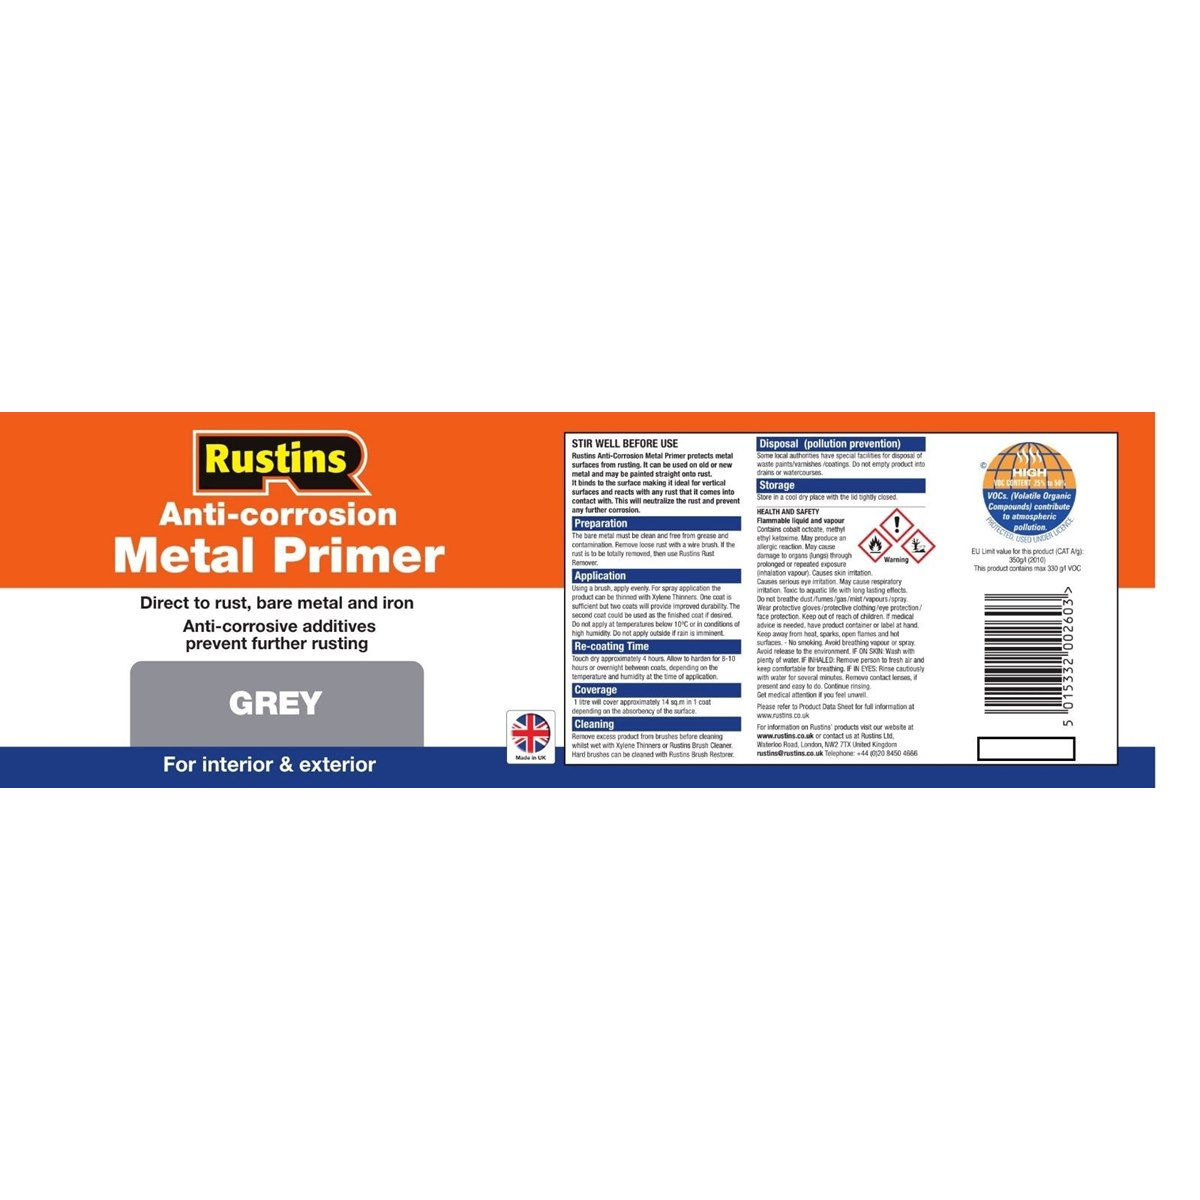 Rustins Grey Anti-Corrosion Metal Primer